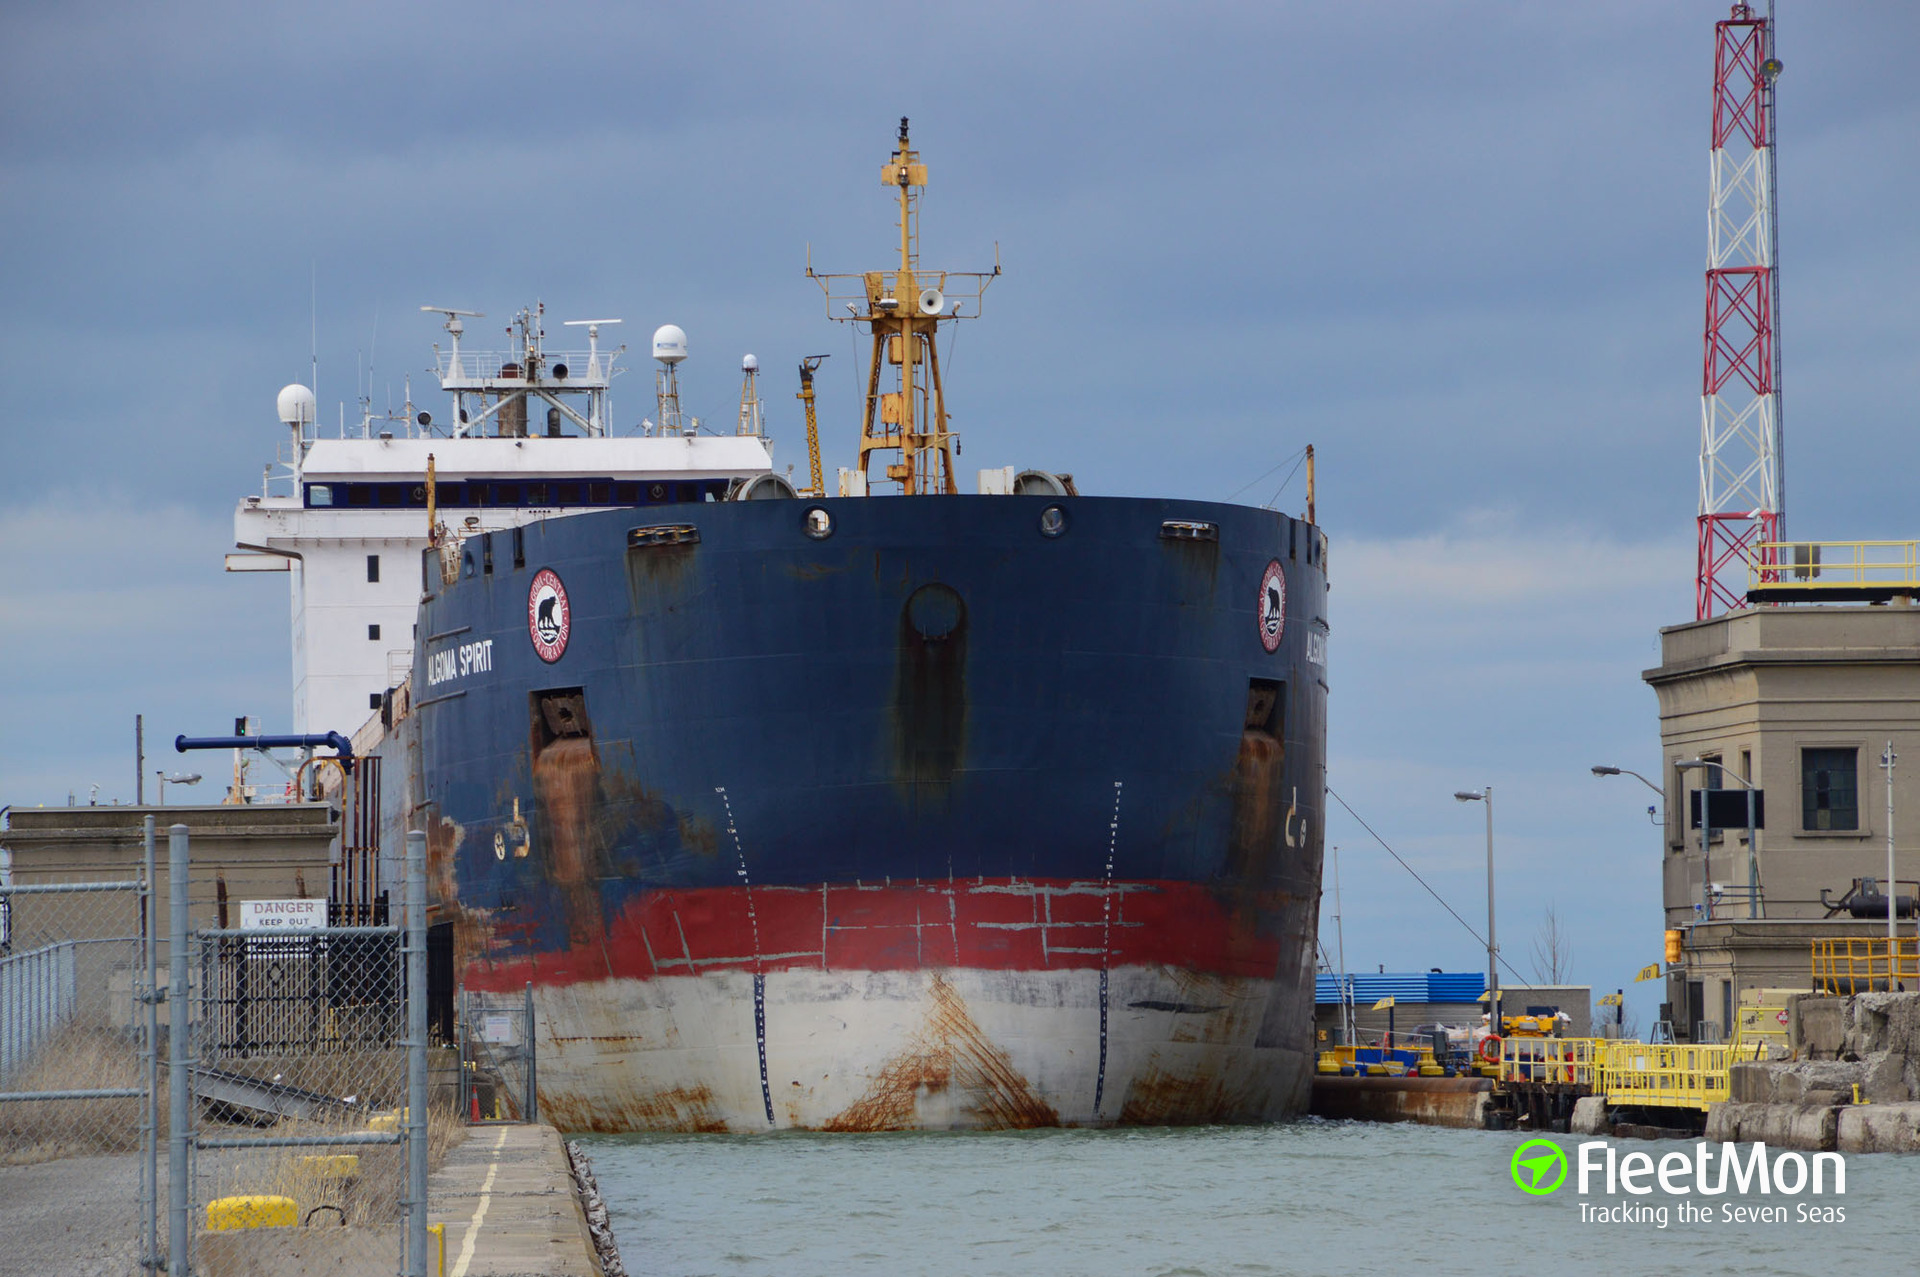 Bulk carrier aground in St Lawrence river